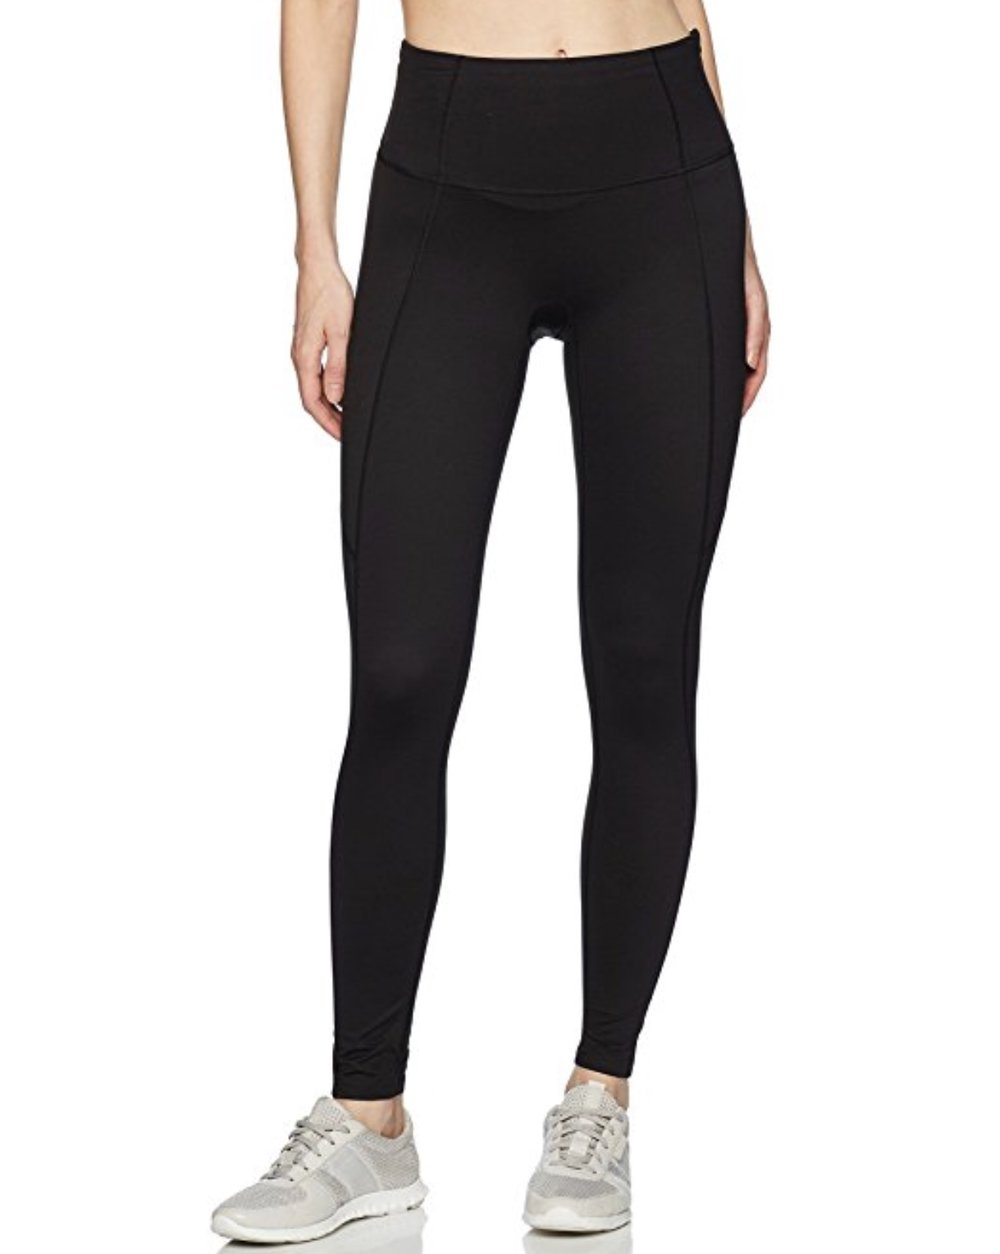 Spanx Active Womens Shaping Compression Leggings, Color: Black